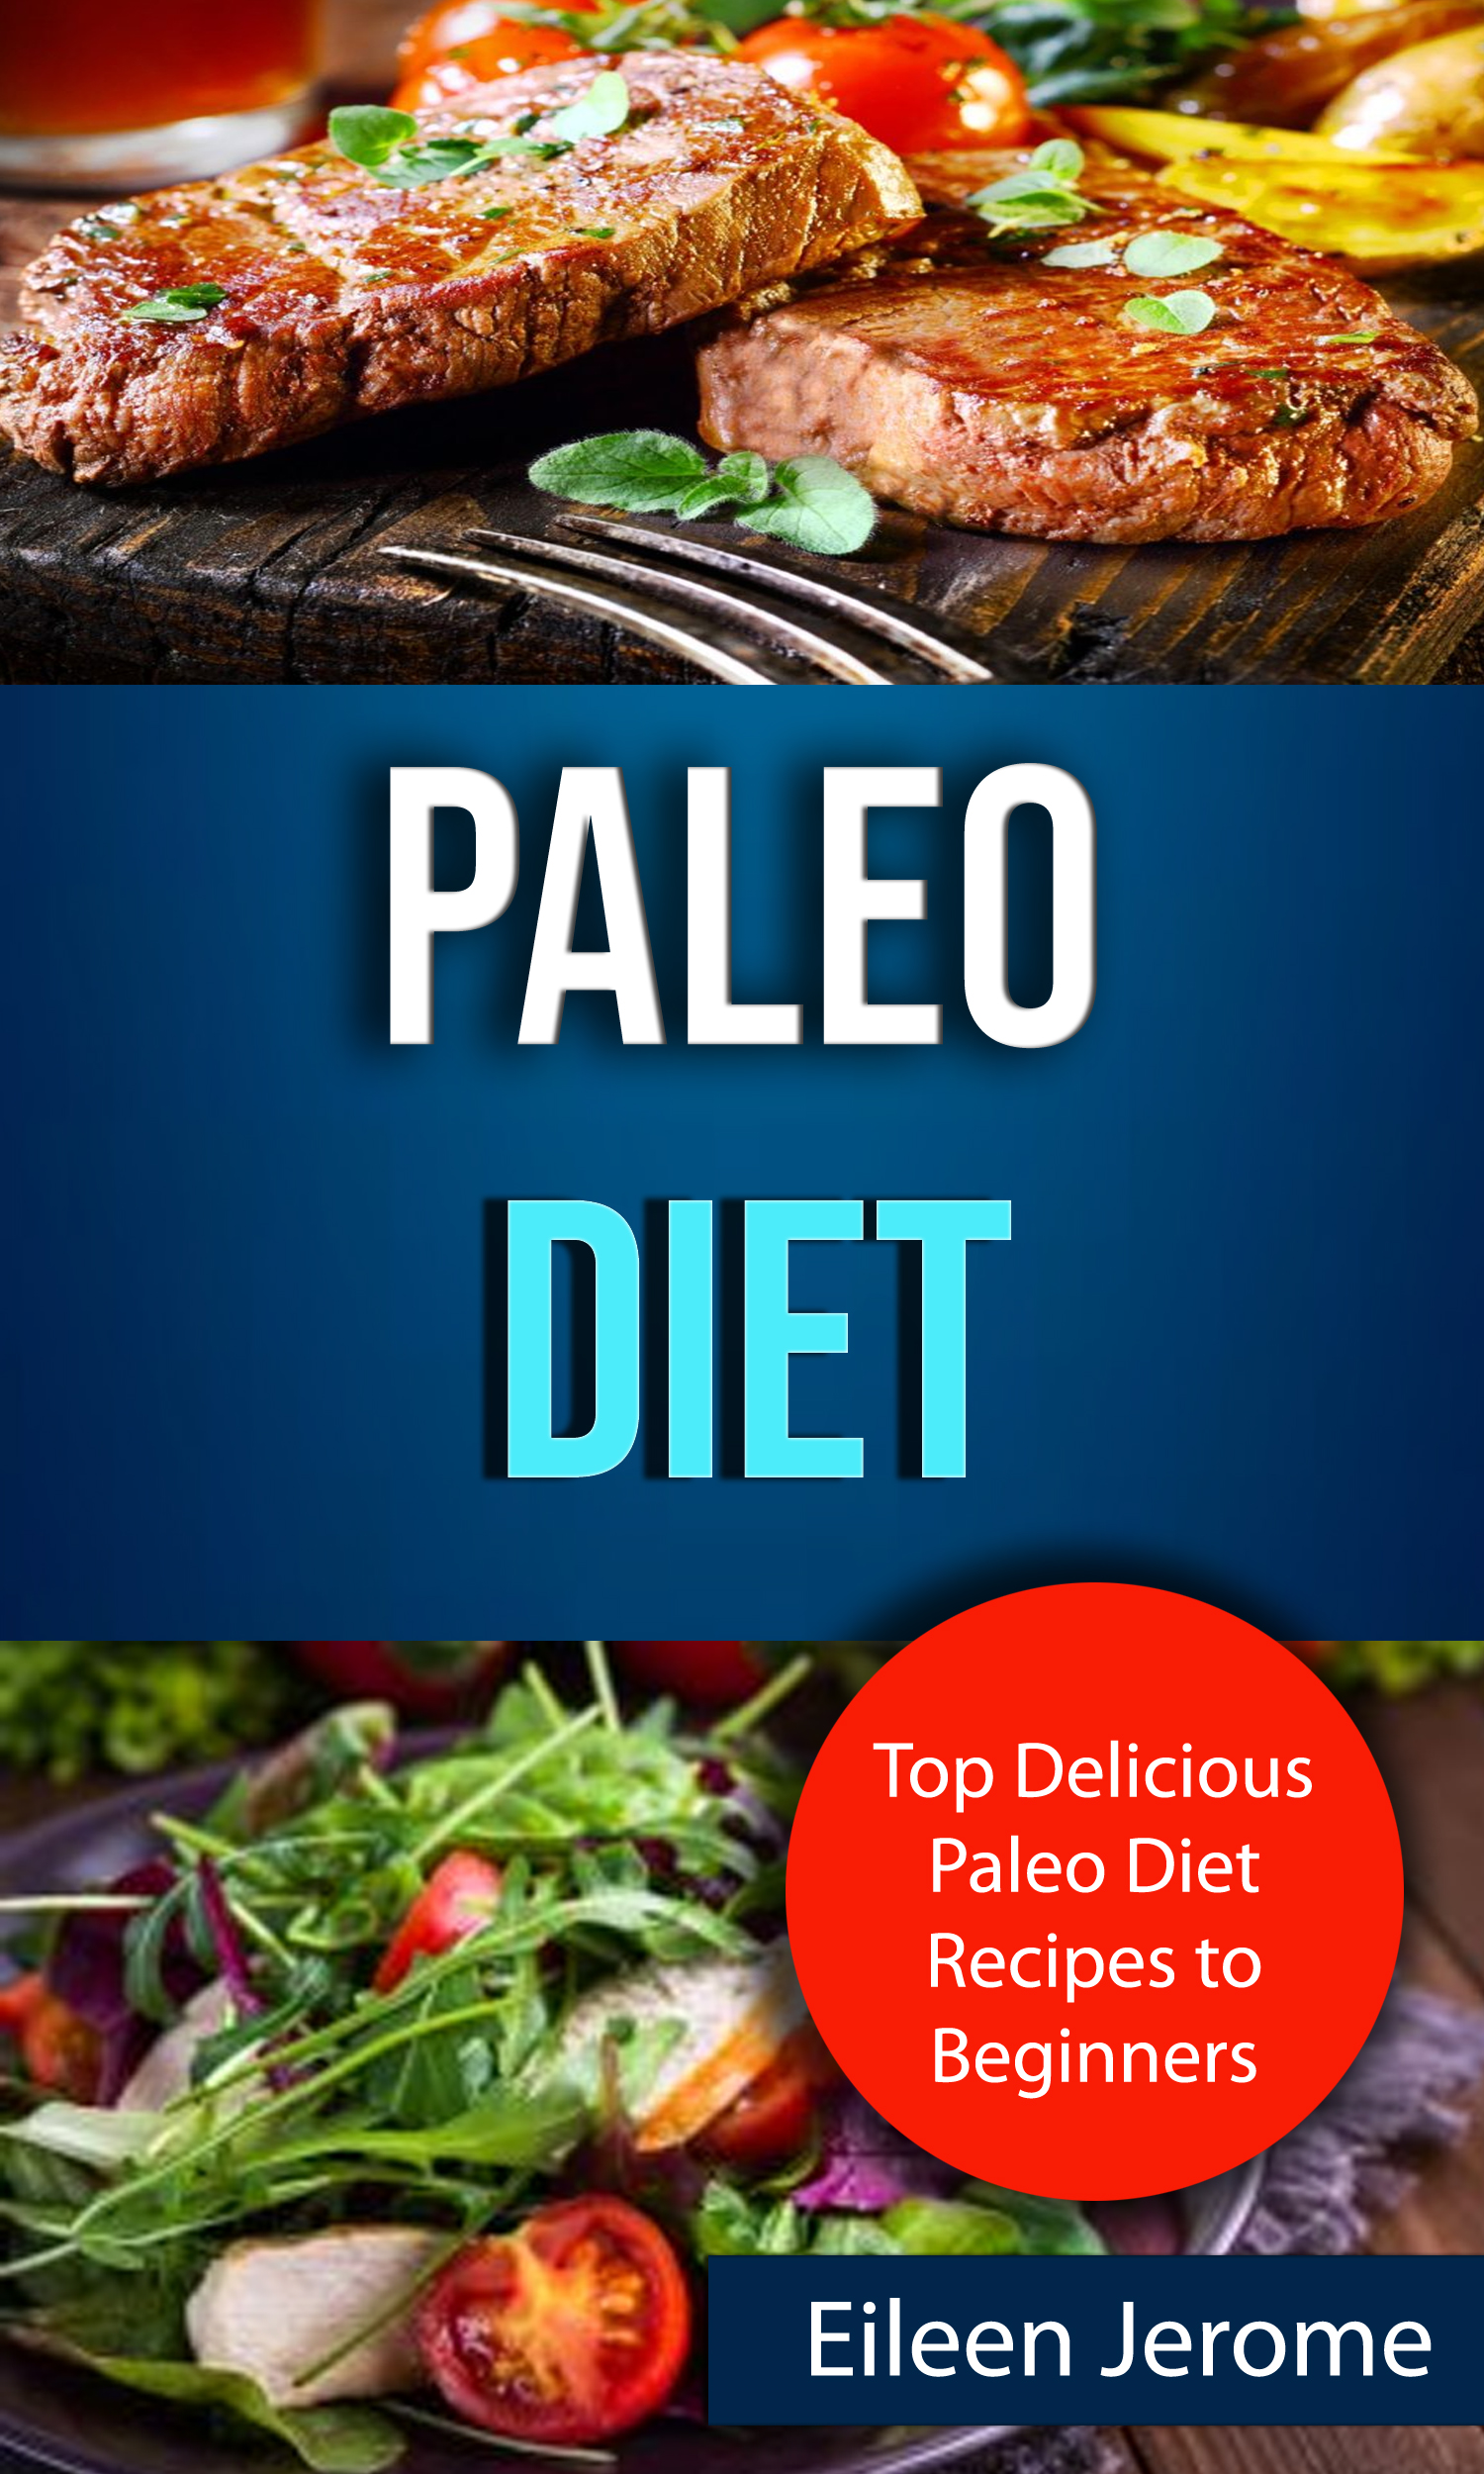 Paleo diet: top delicious paleo diet recipes to beginners